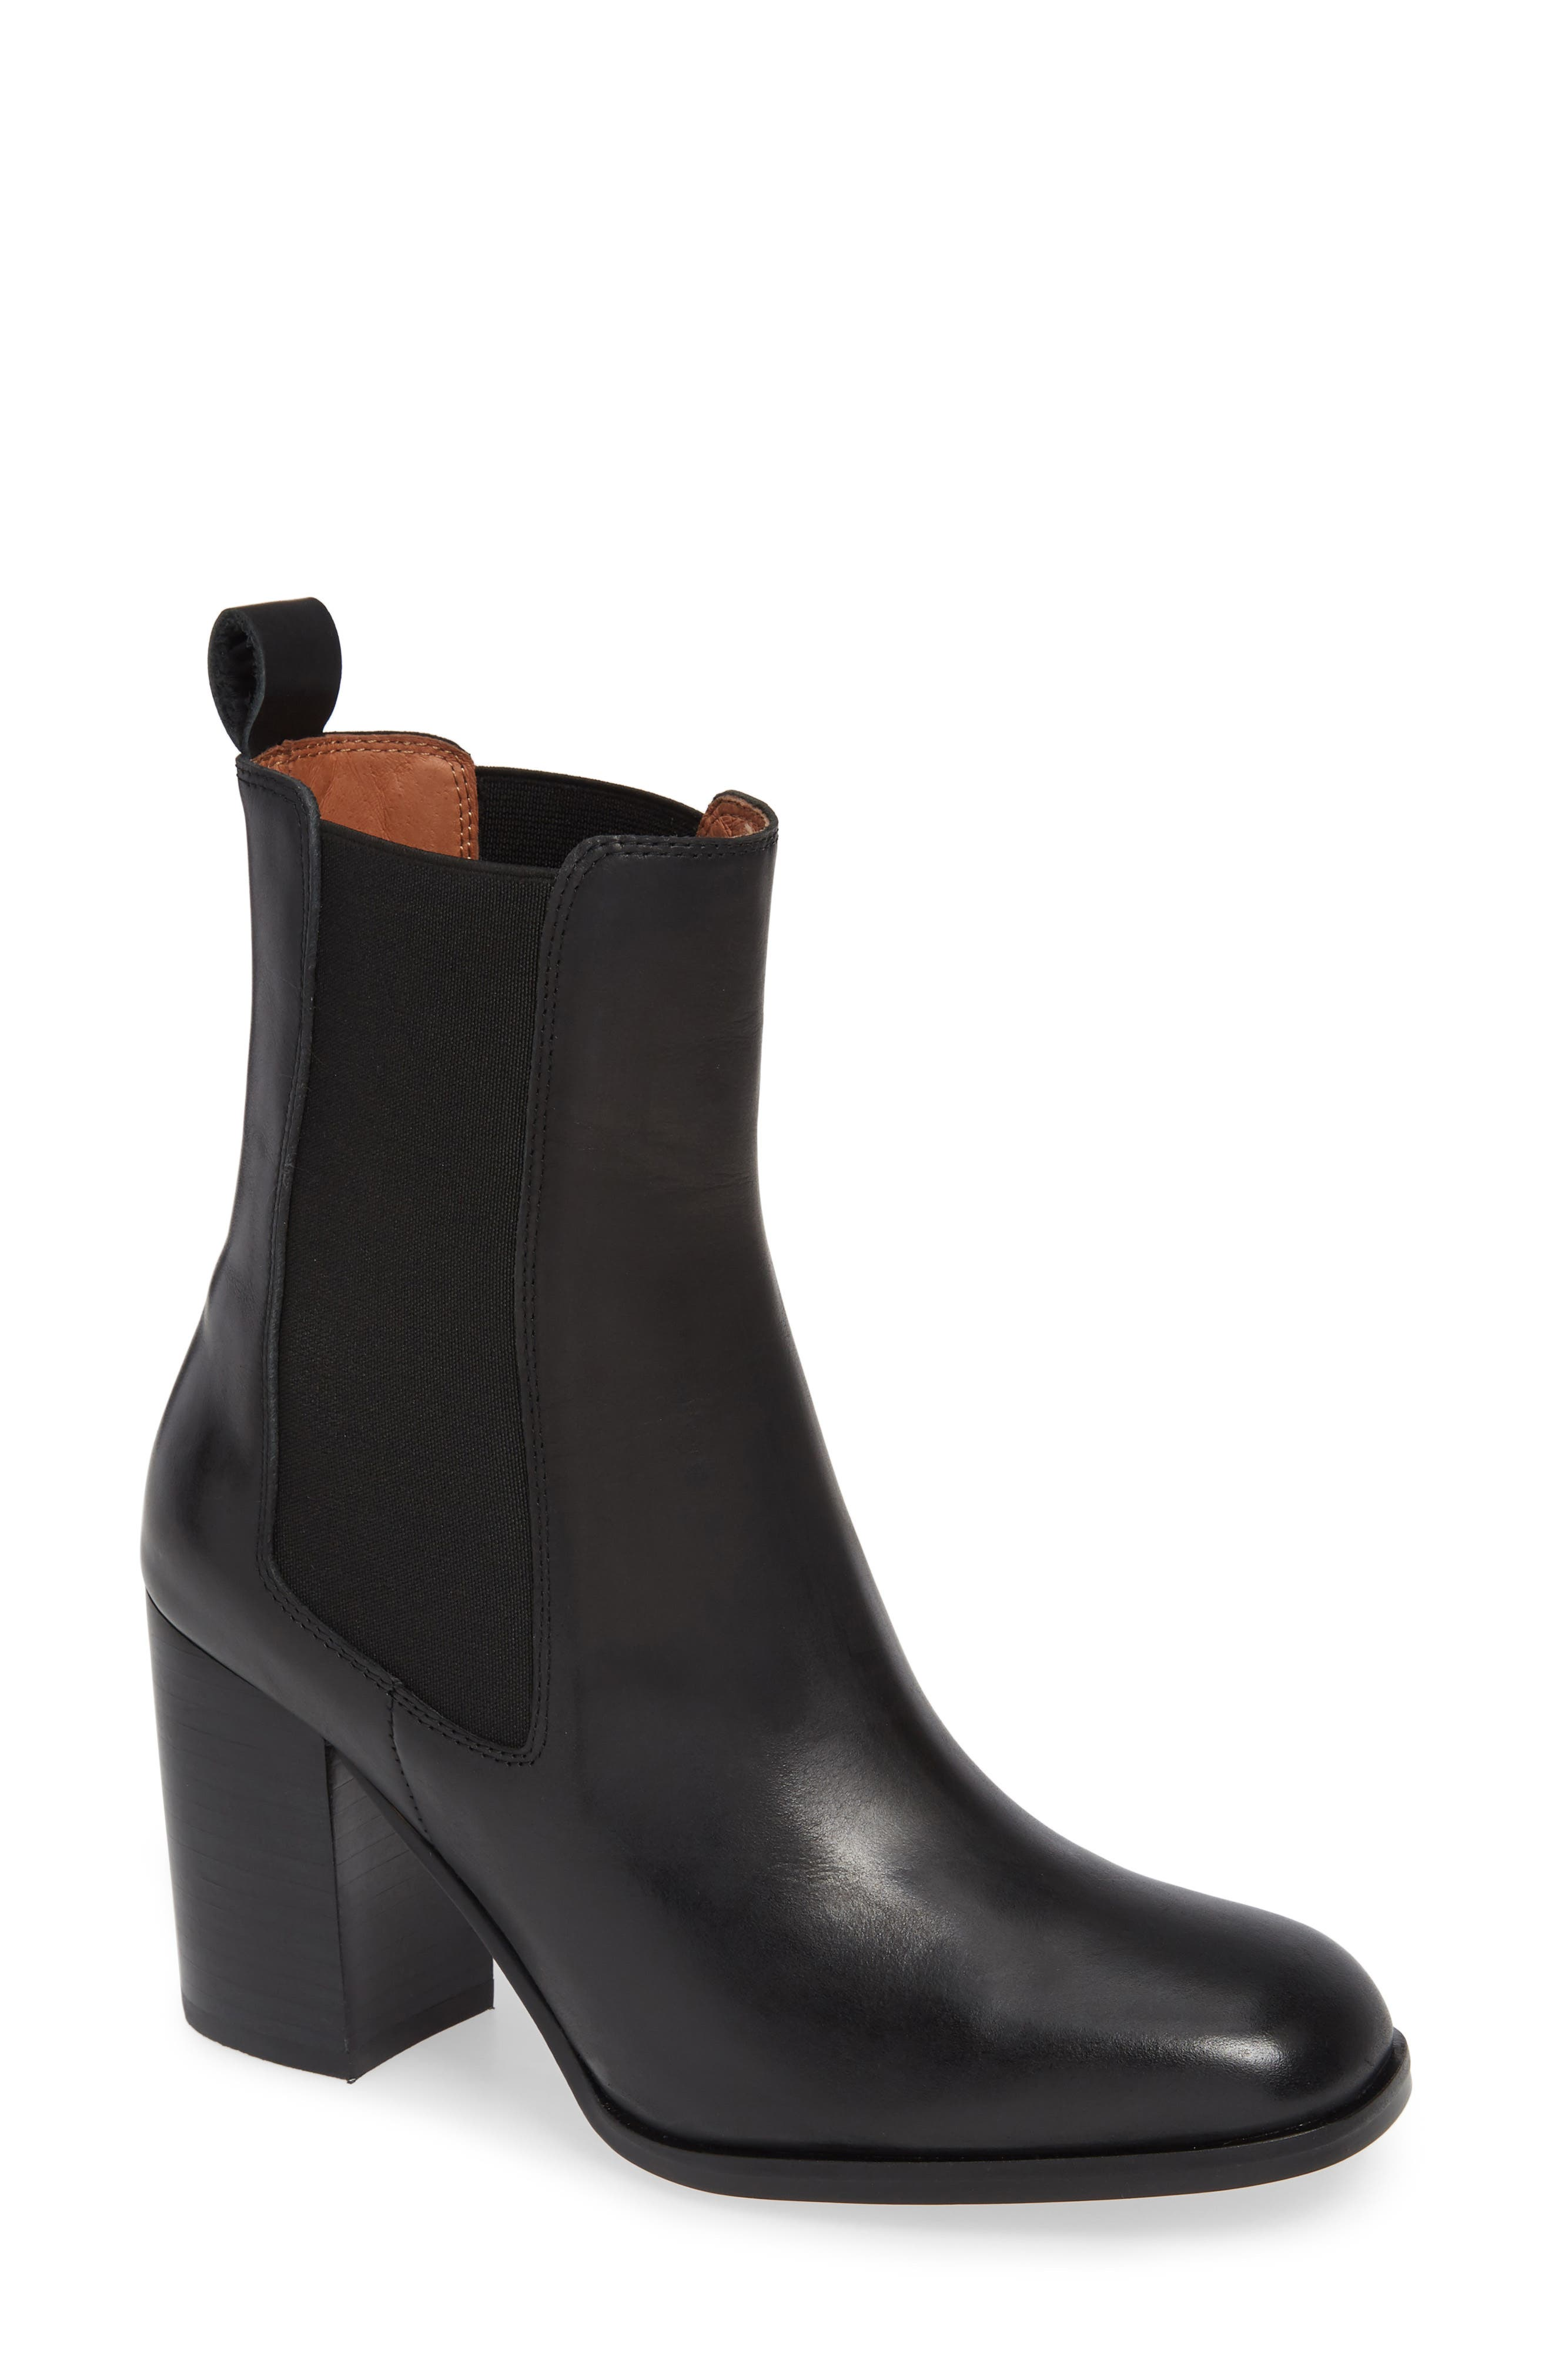 ALIAS MAE Nyala Chelsea Bootie in Black Leather